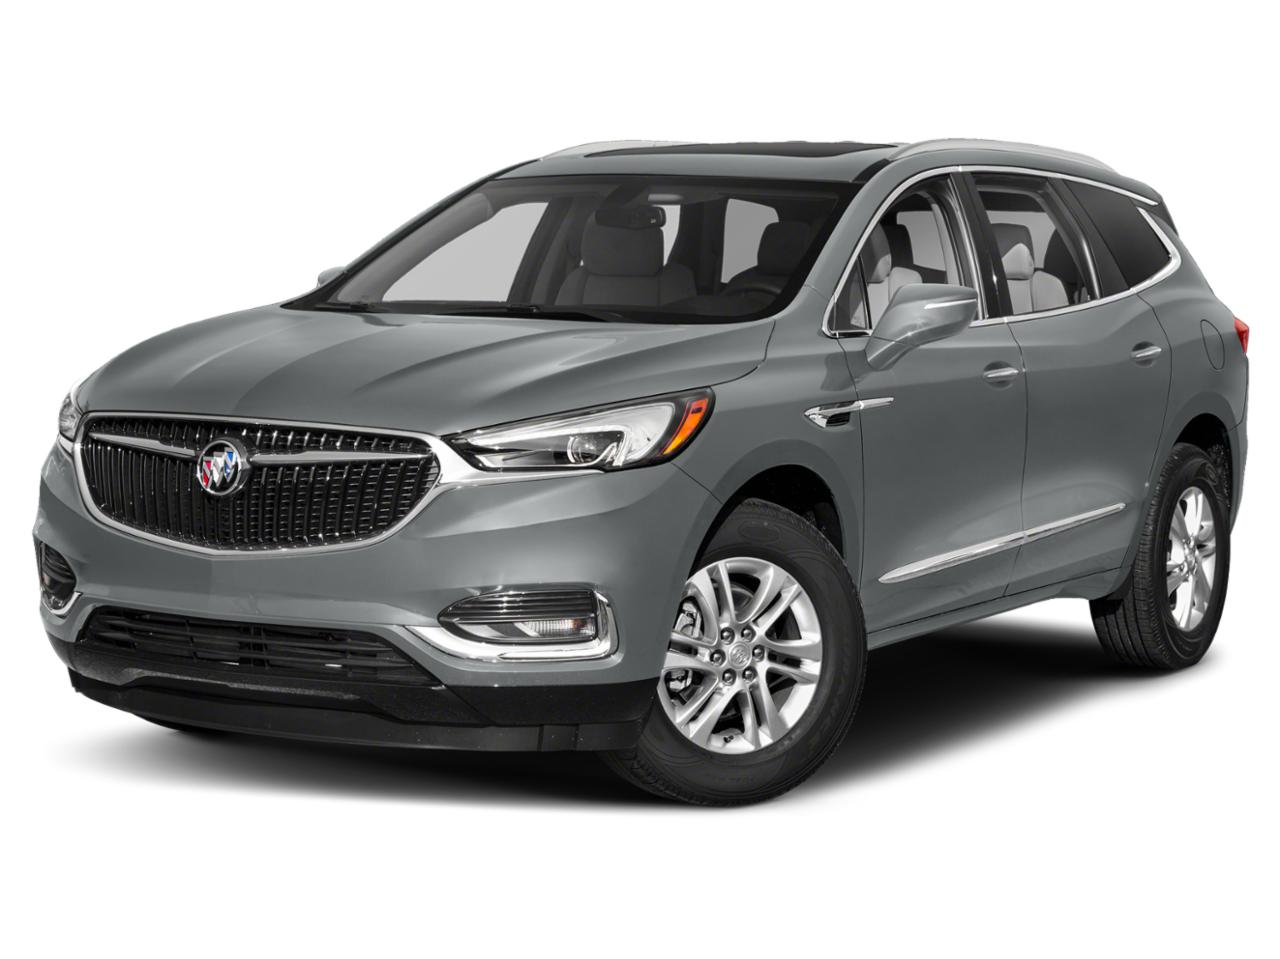 2019 Buick Enclave Vehicle Photo in Houghton, MI 49931